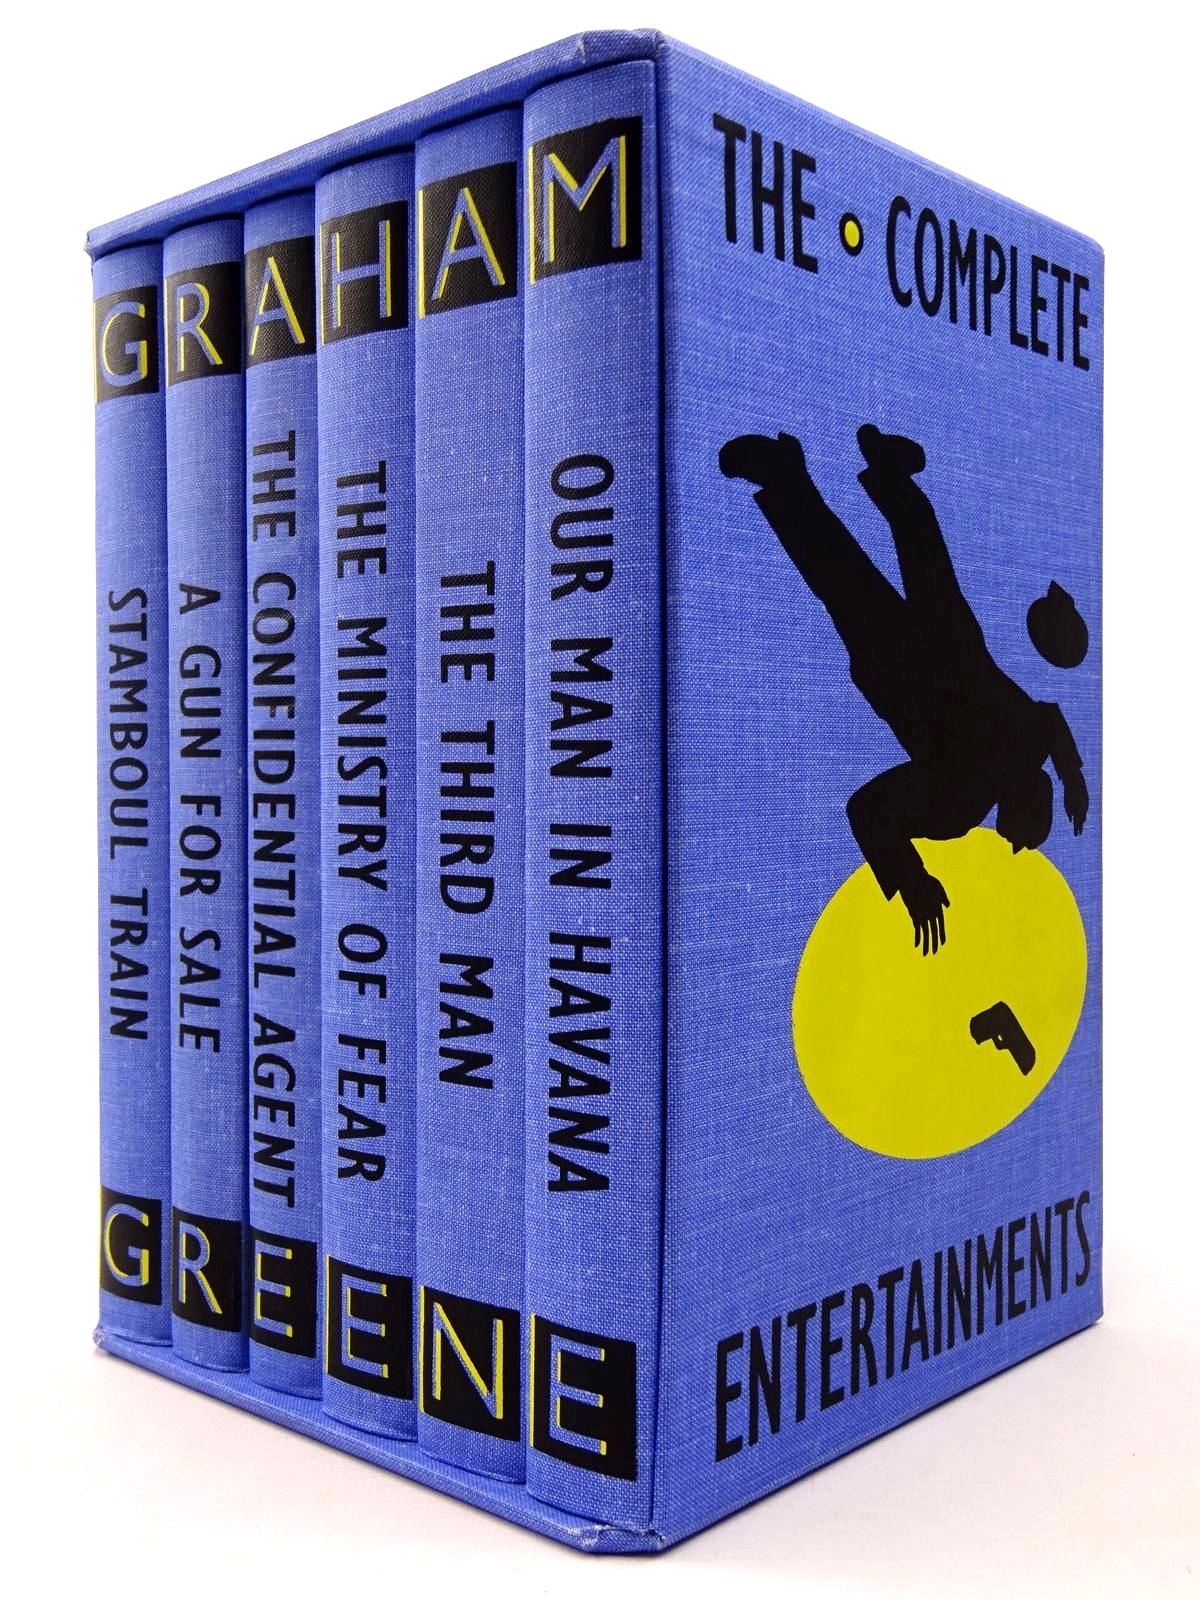 Photo of THE COMPLETE ENTERTAINMENTS (6 VOLUMES) written by Greene, Graham illustrated by Grandfield, Geoff published by Folio Society (STOCK CODE: 2130008)  for sale by Stella & Rose's Books